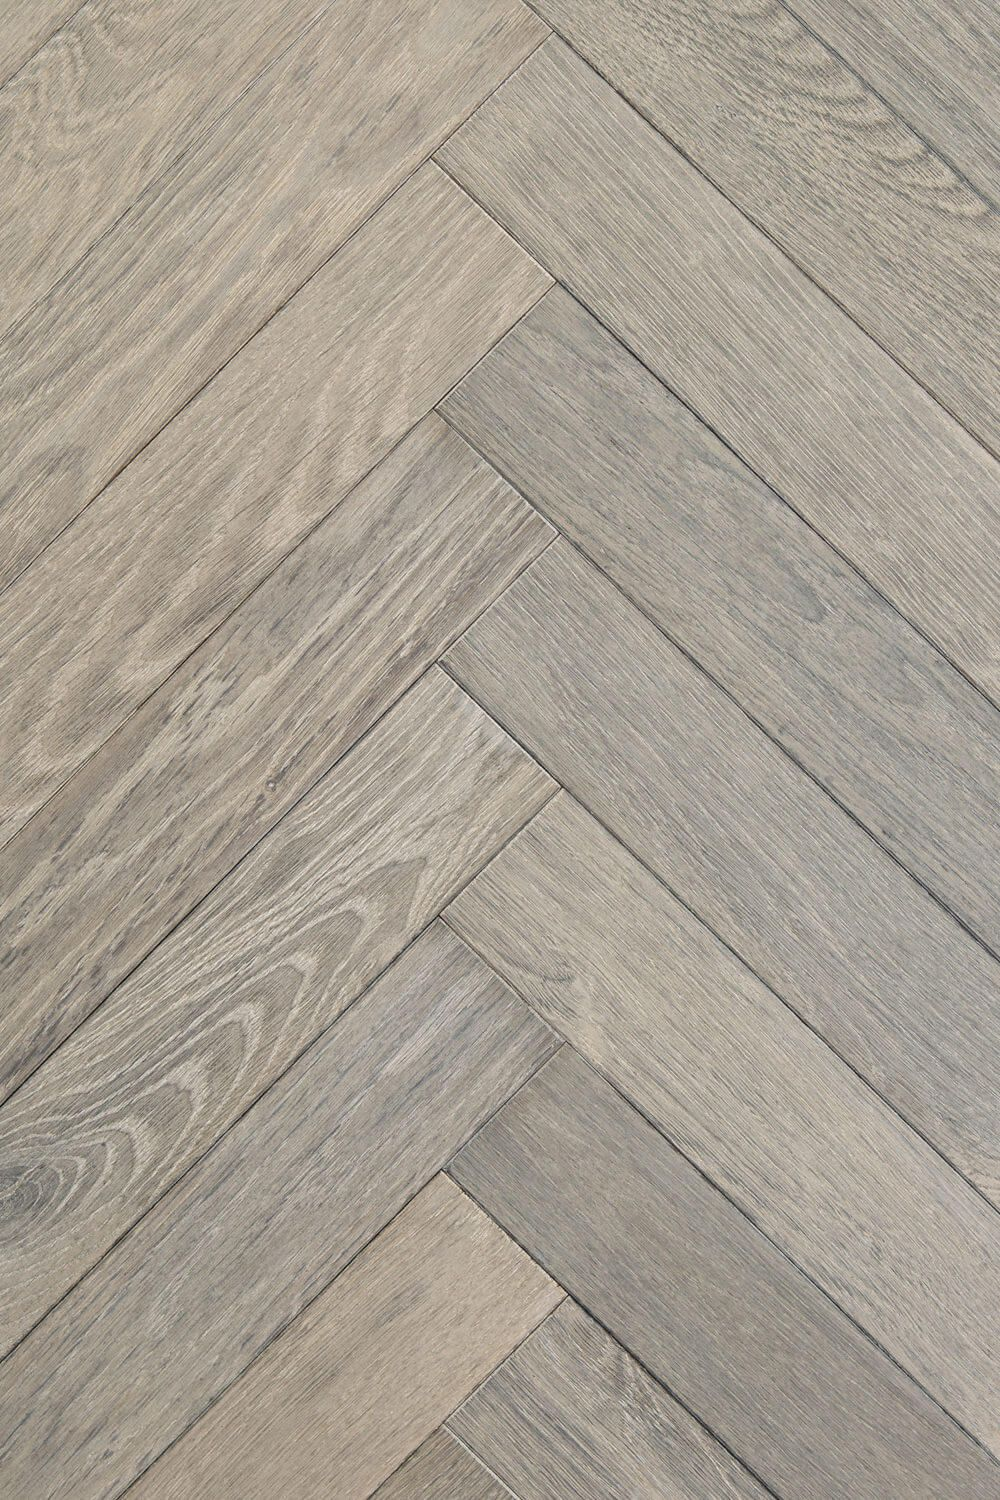 Parquet Wood Flooring Silver Washed Parquet Available In Character Prime Grades Made Of European Oak Oak Parquet Flooring Hall Flooring Parquet Flooring